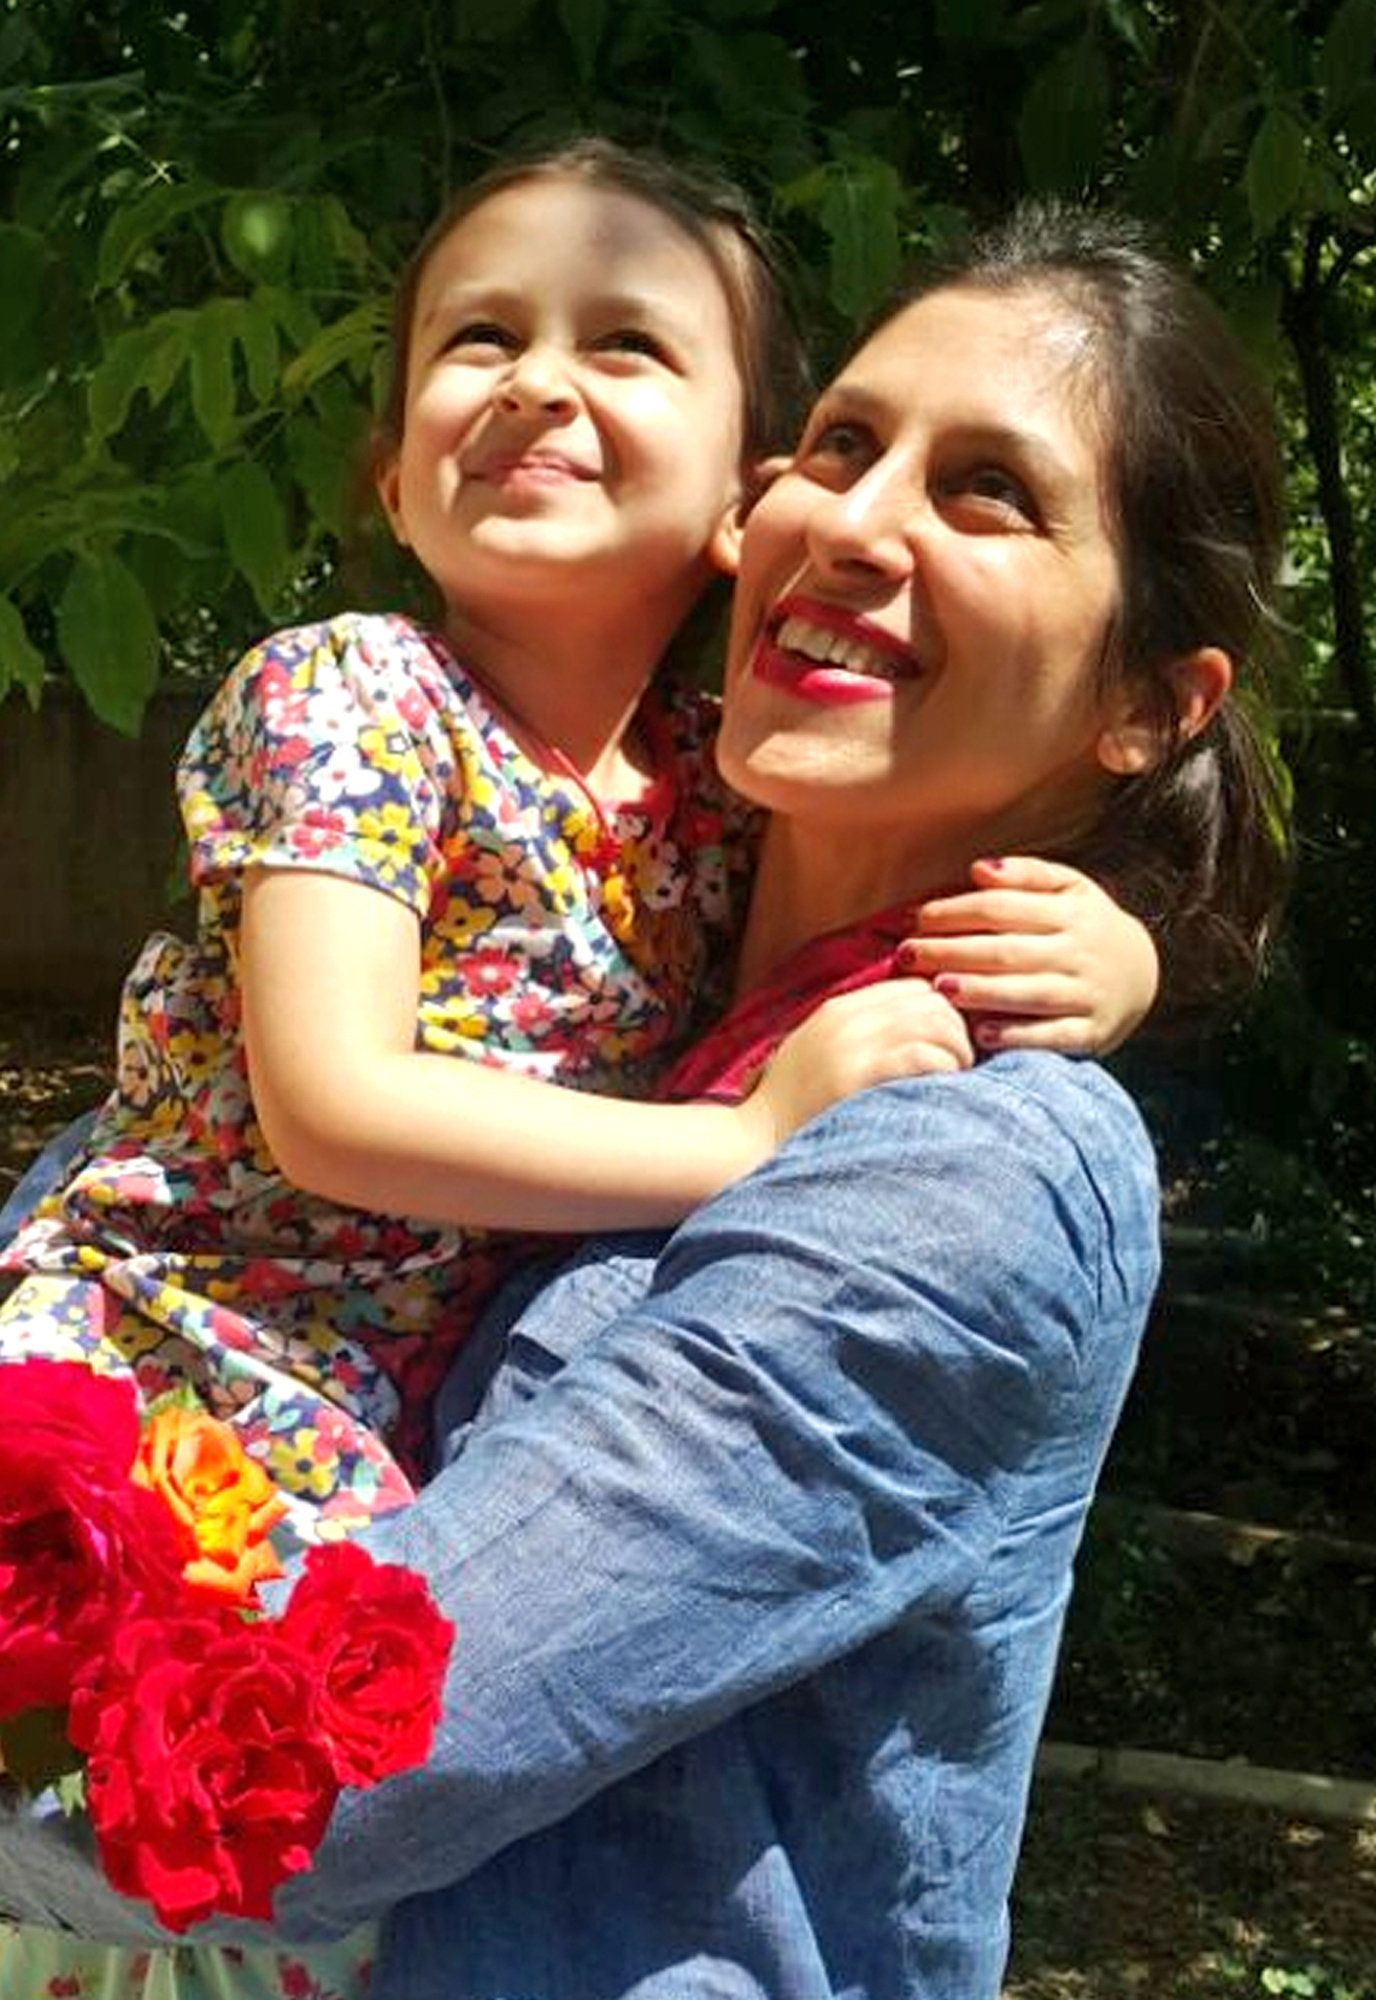 Nazanin Zaghari-Ratcliffe To Start Hunger Strike Over Lack of Medical Care While In